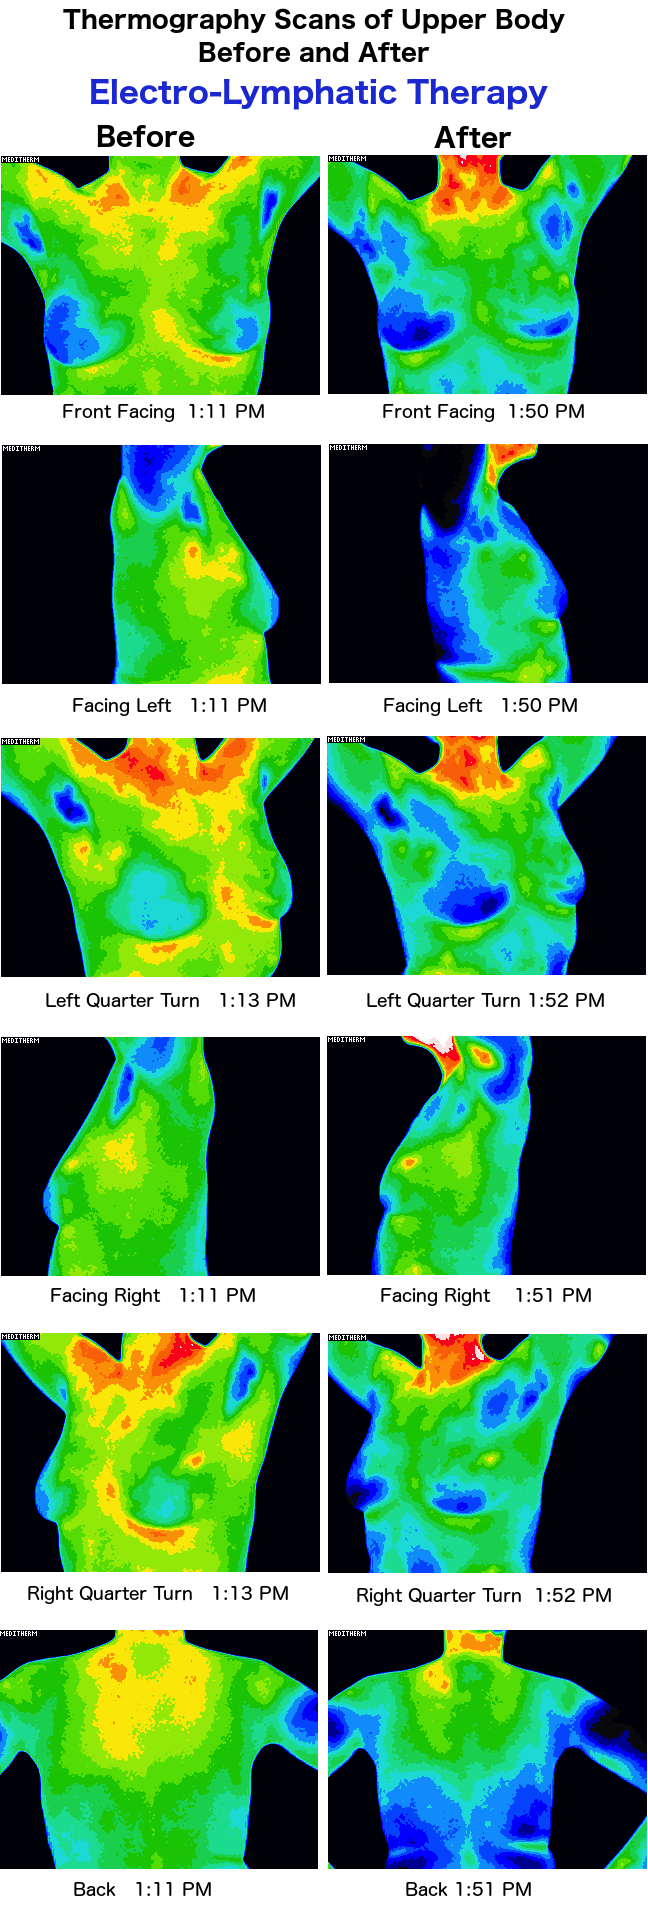 Thermography Scans of the upper body before and after Electro-Lymphatic Therapy